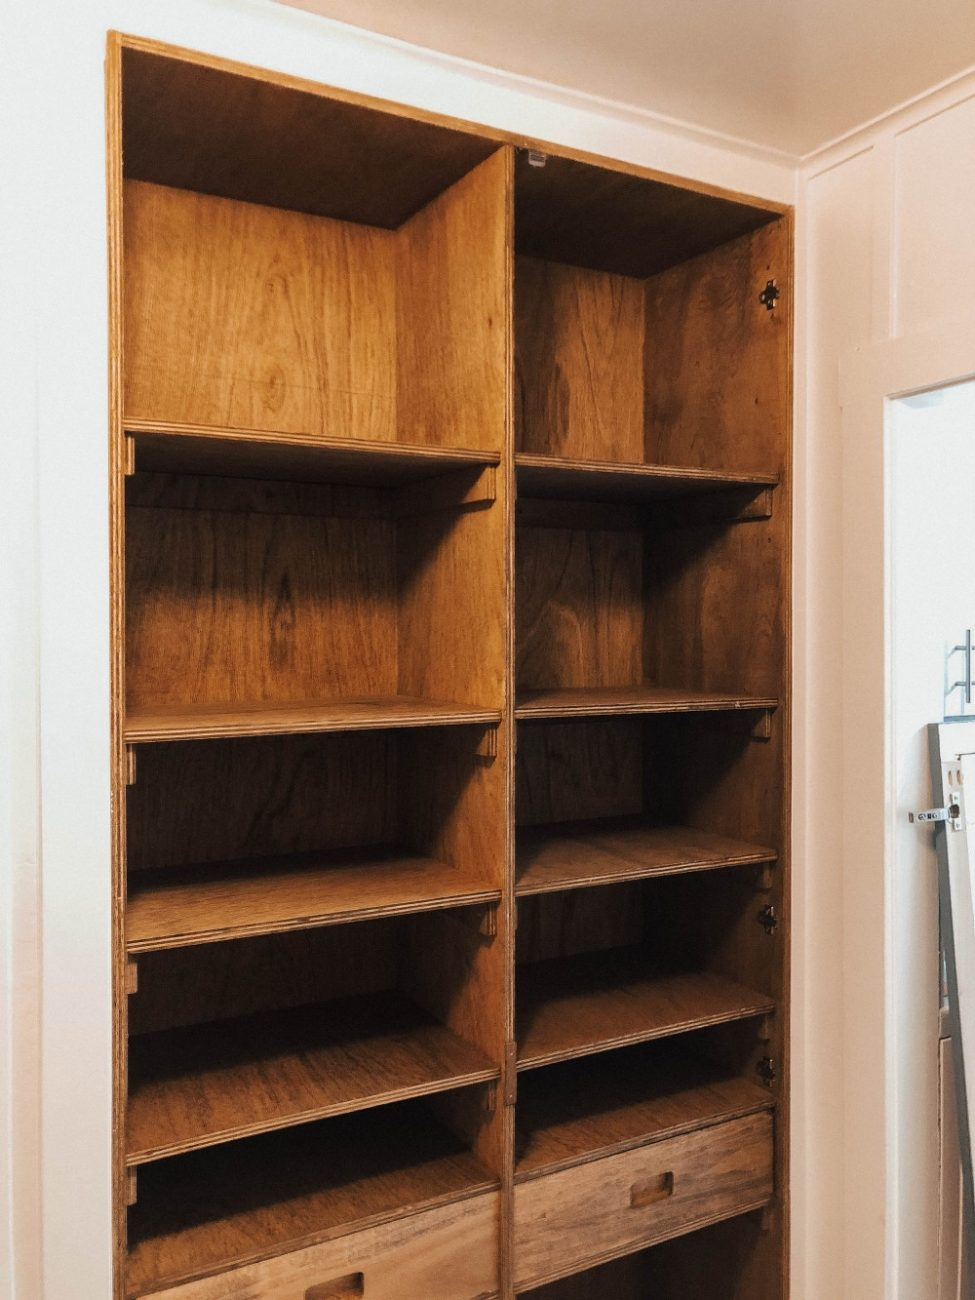 Sharing our latest home DIY pantry and small room transformation on Have Need Want. Click over to the blog to check it out! #homediy #diyproject #pantryremodel #roomtransformation